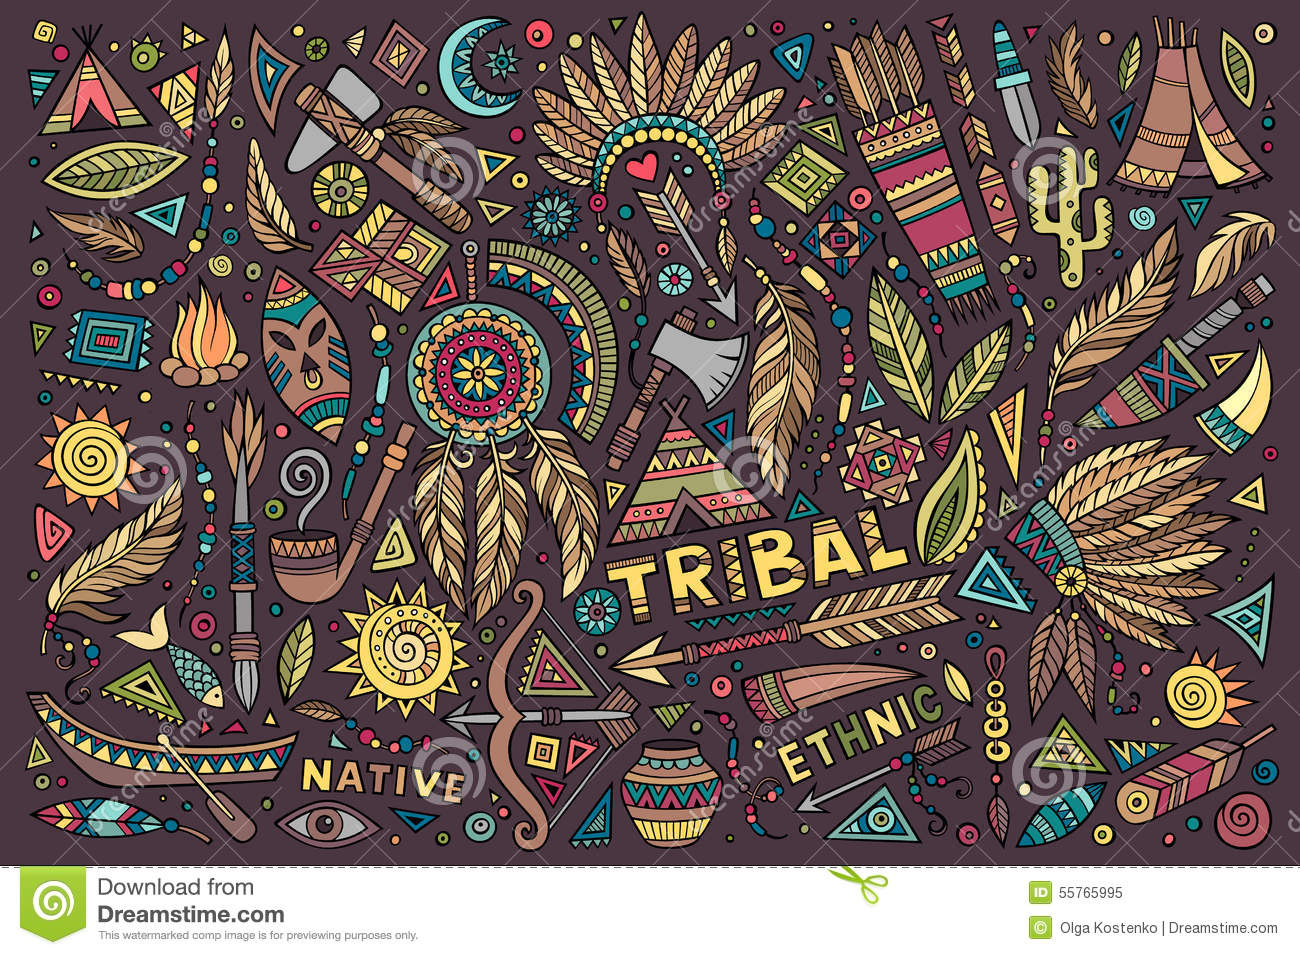 B Aecfae C A A Police Patches Law Enforcement additionally  likewise Visual Impairment besides Anasazi Petroglyphs also Bd. on native american symbols 5